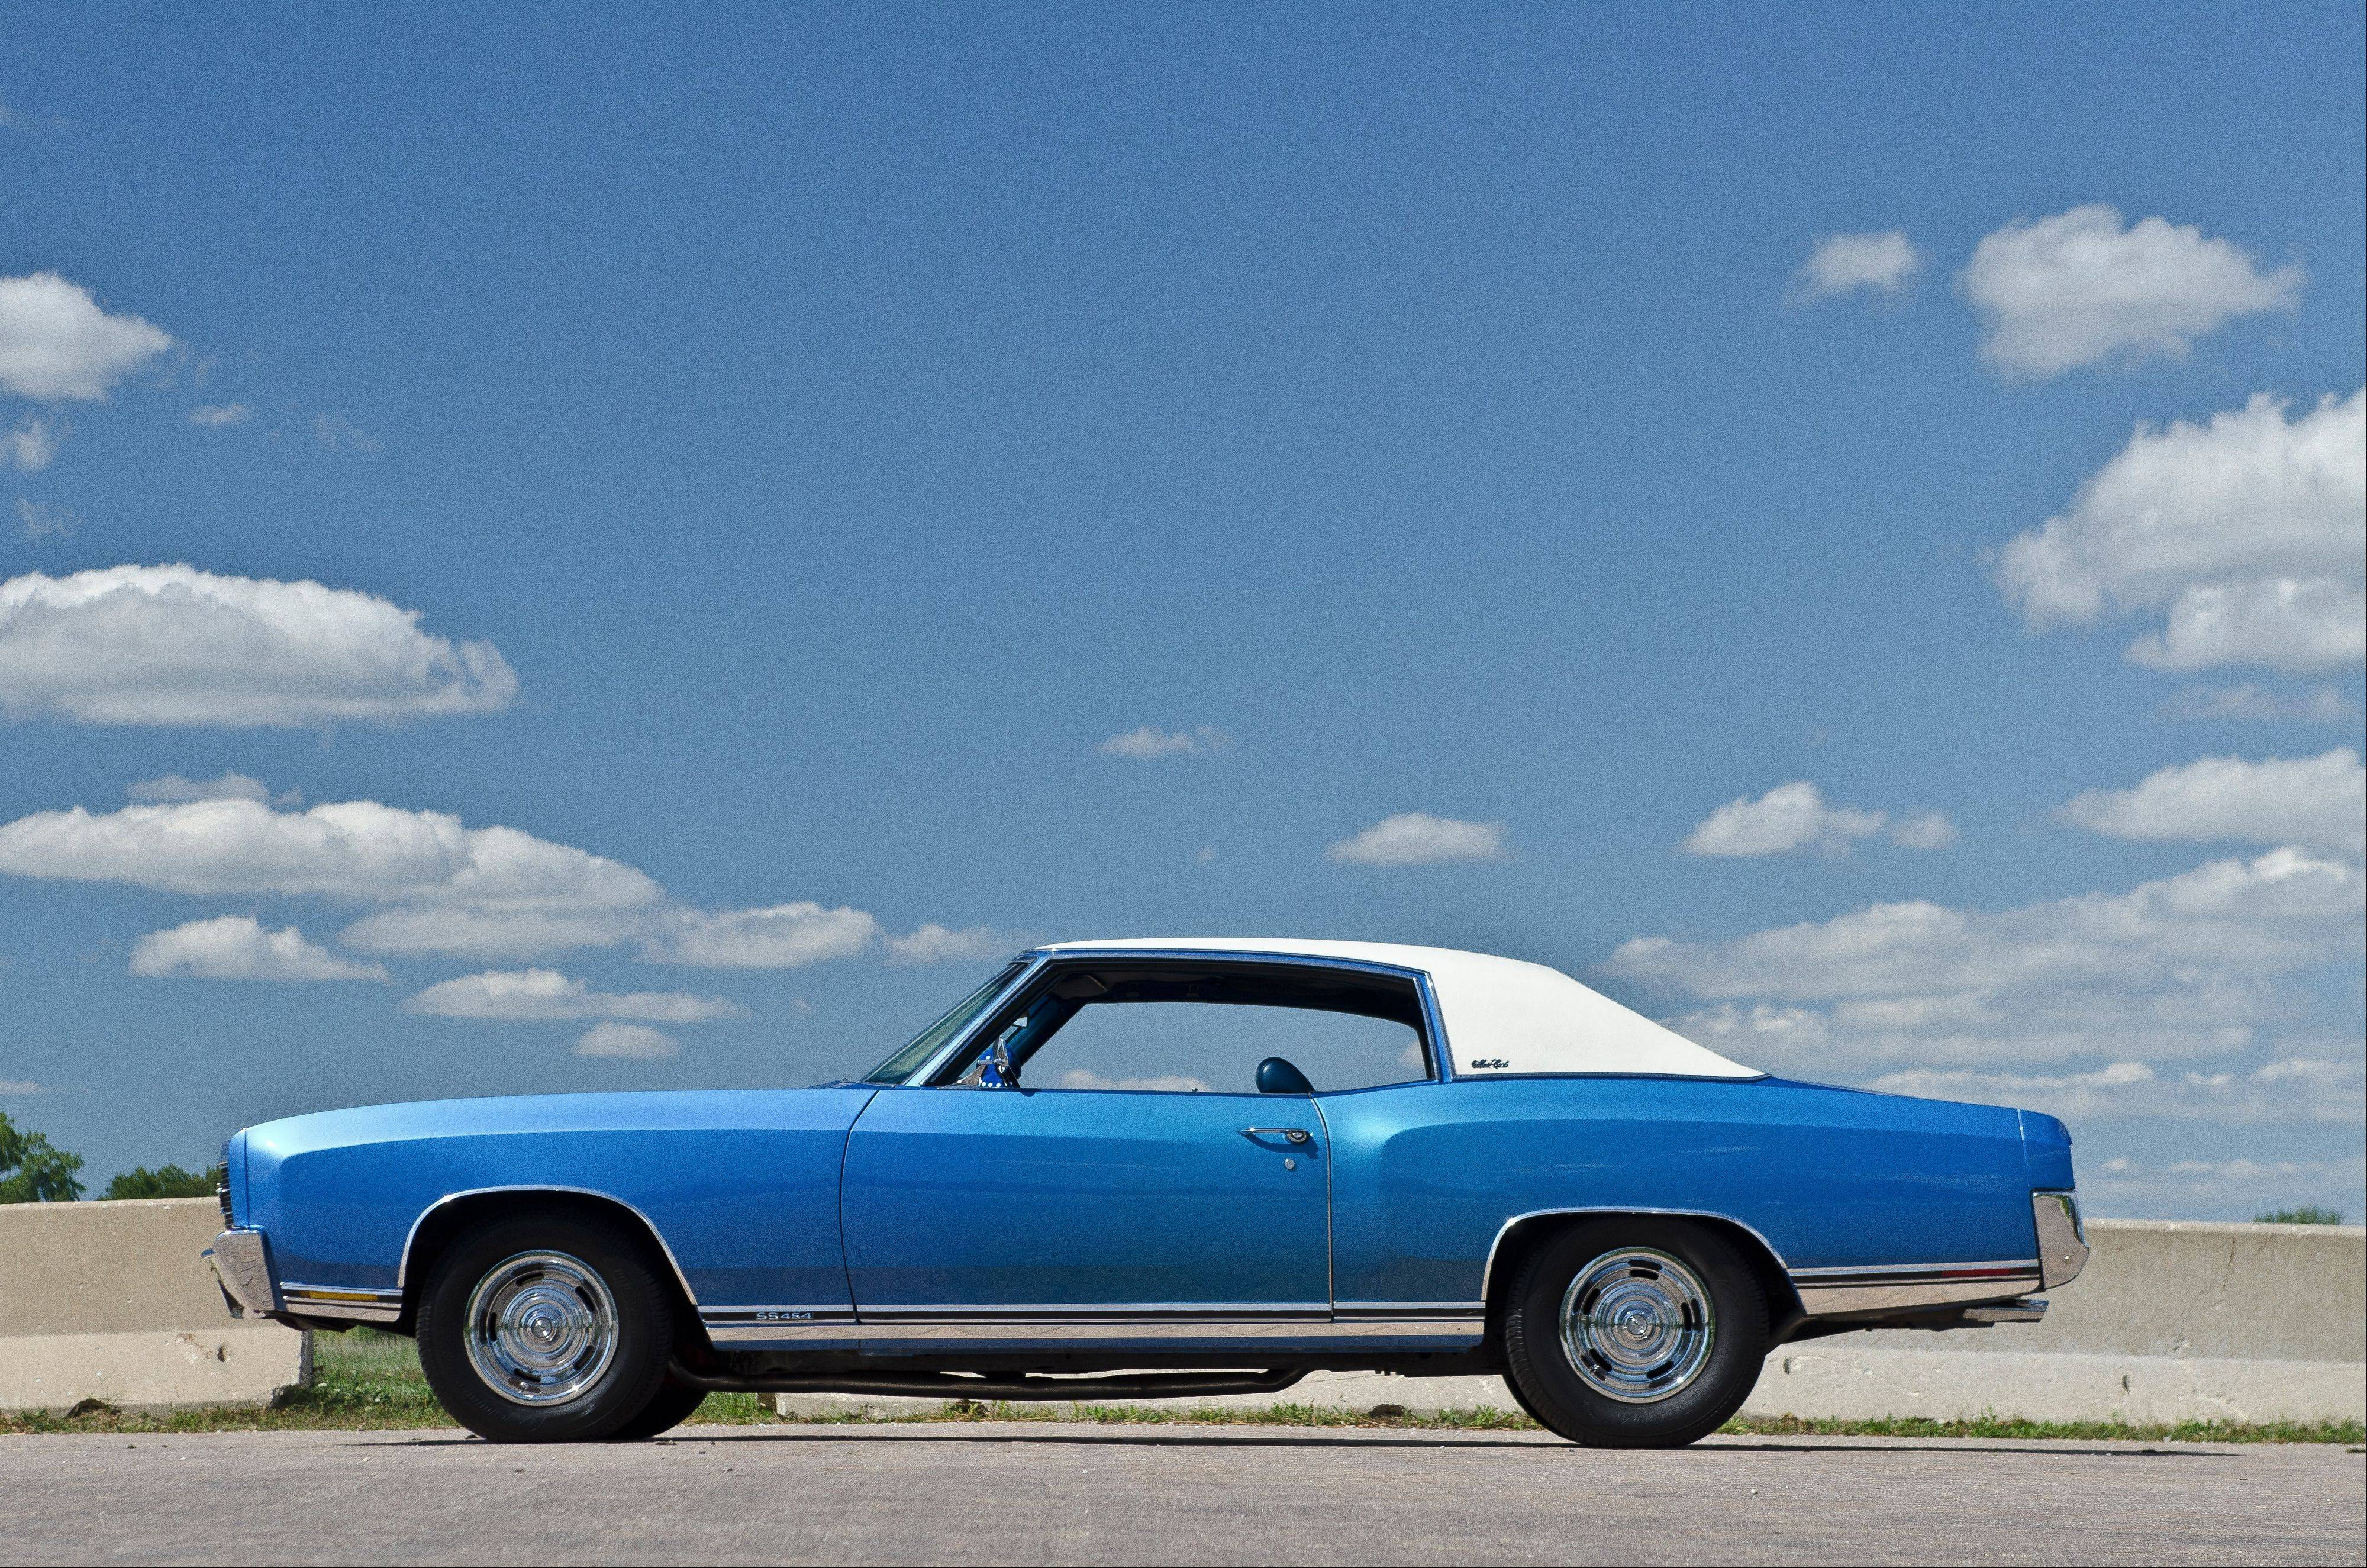 The 1970 Monte Carlo SS is reminiscent of the first car Tom Porzak owned.